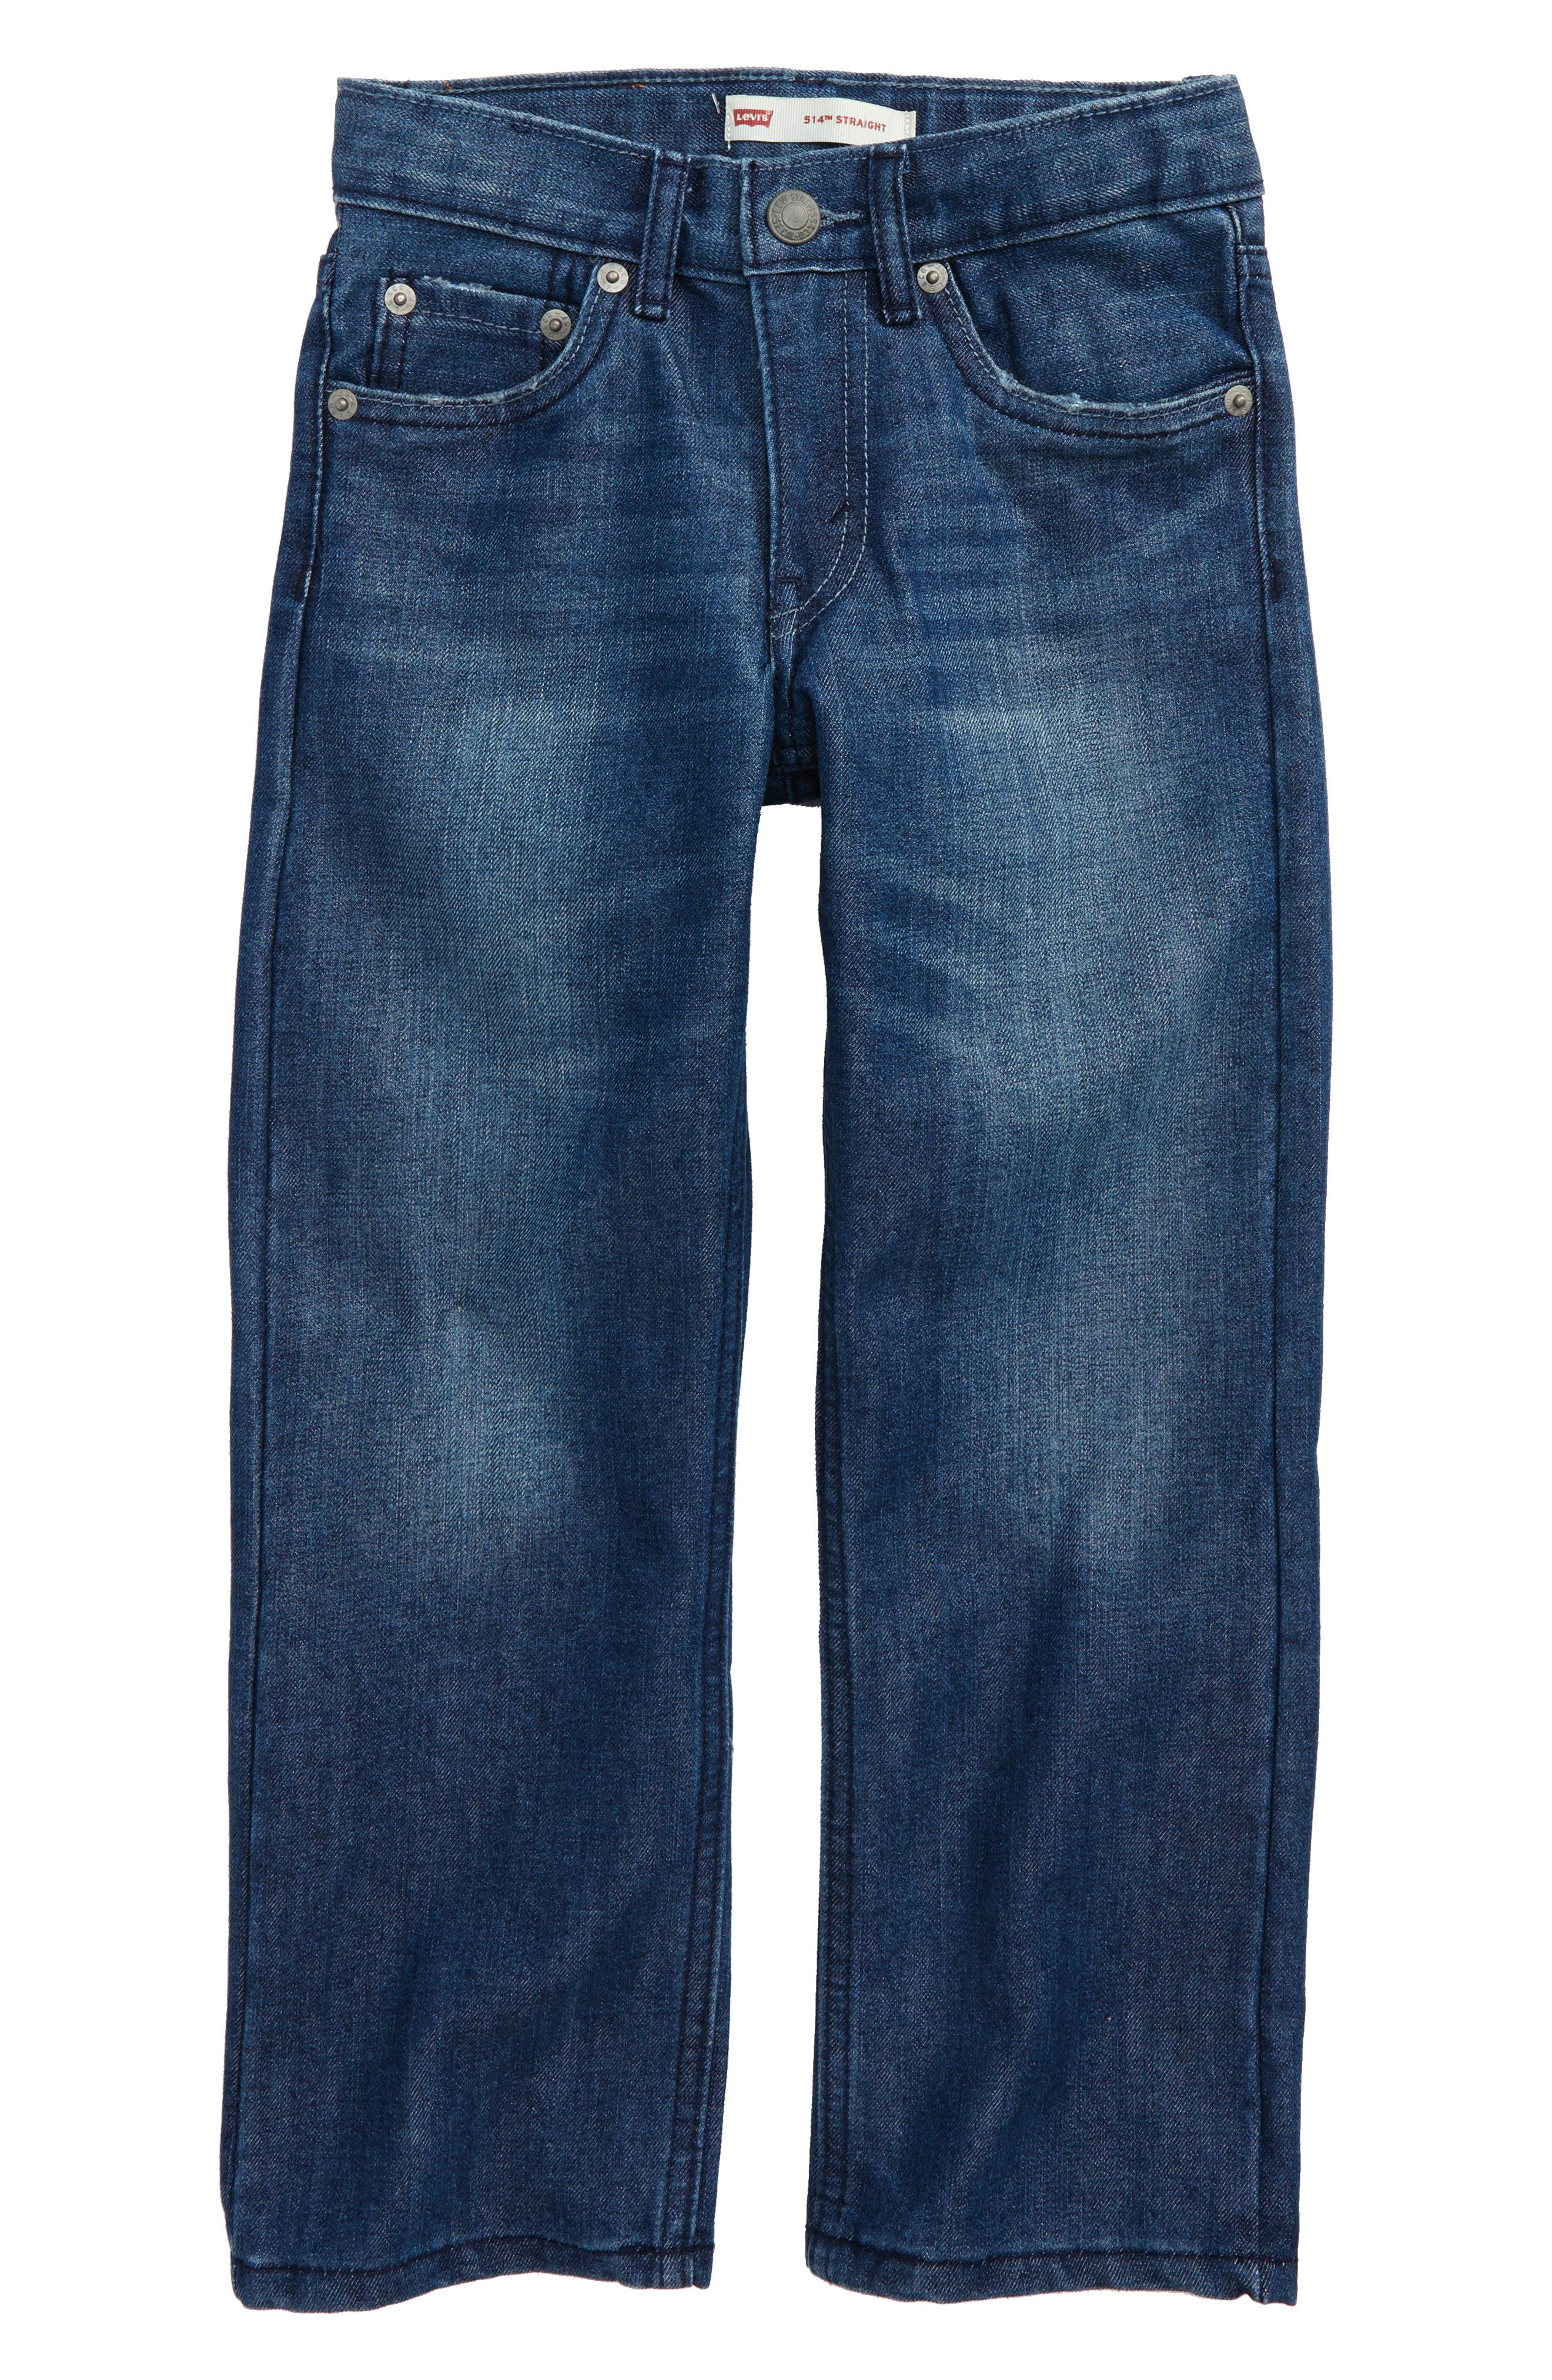 514<sup>™</sup> Straight Leg Jeans,                             Main thumbnail 1, color,                             421